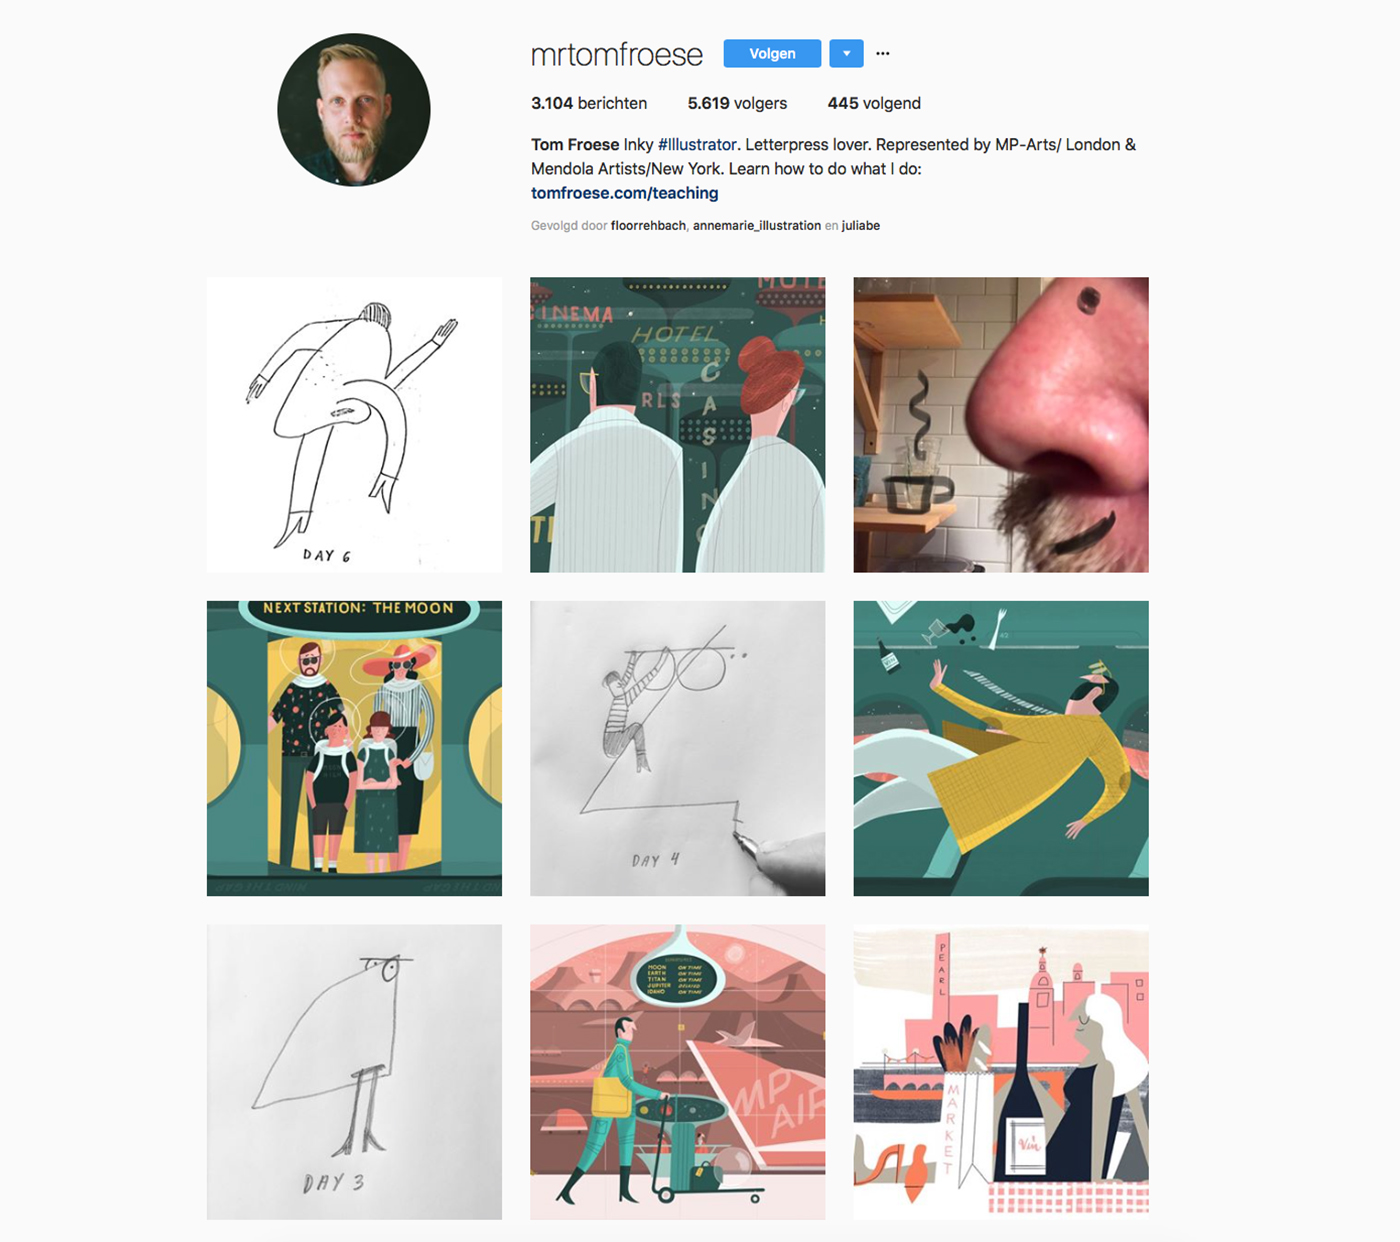 Instagram account of Tom Froese